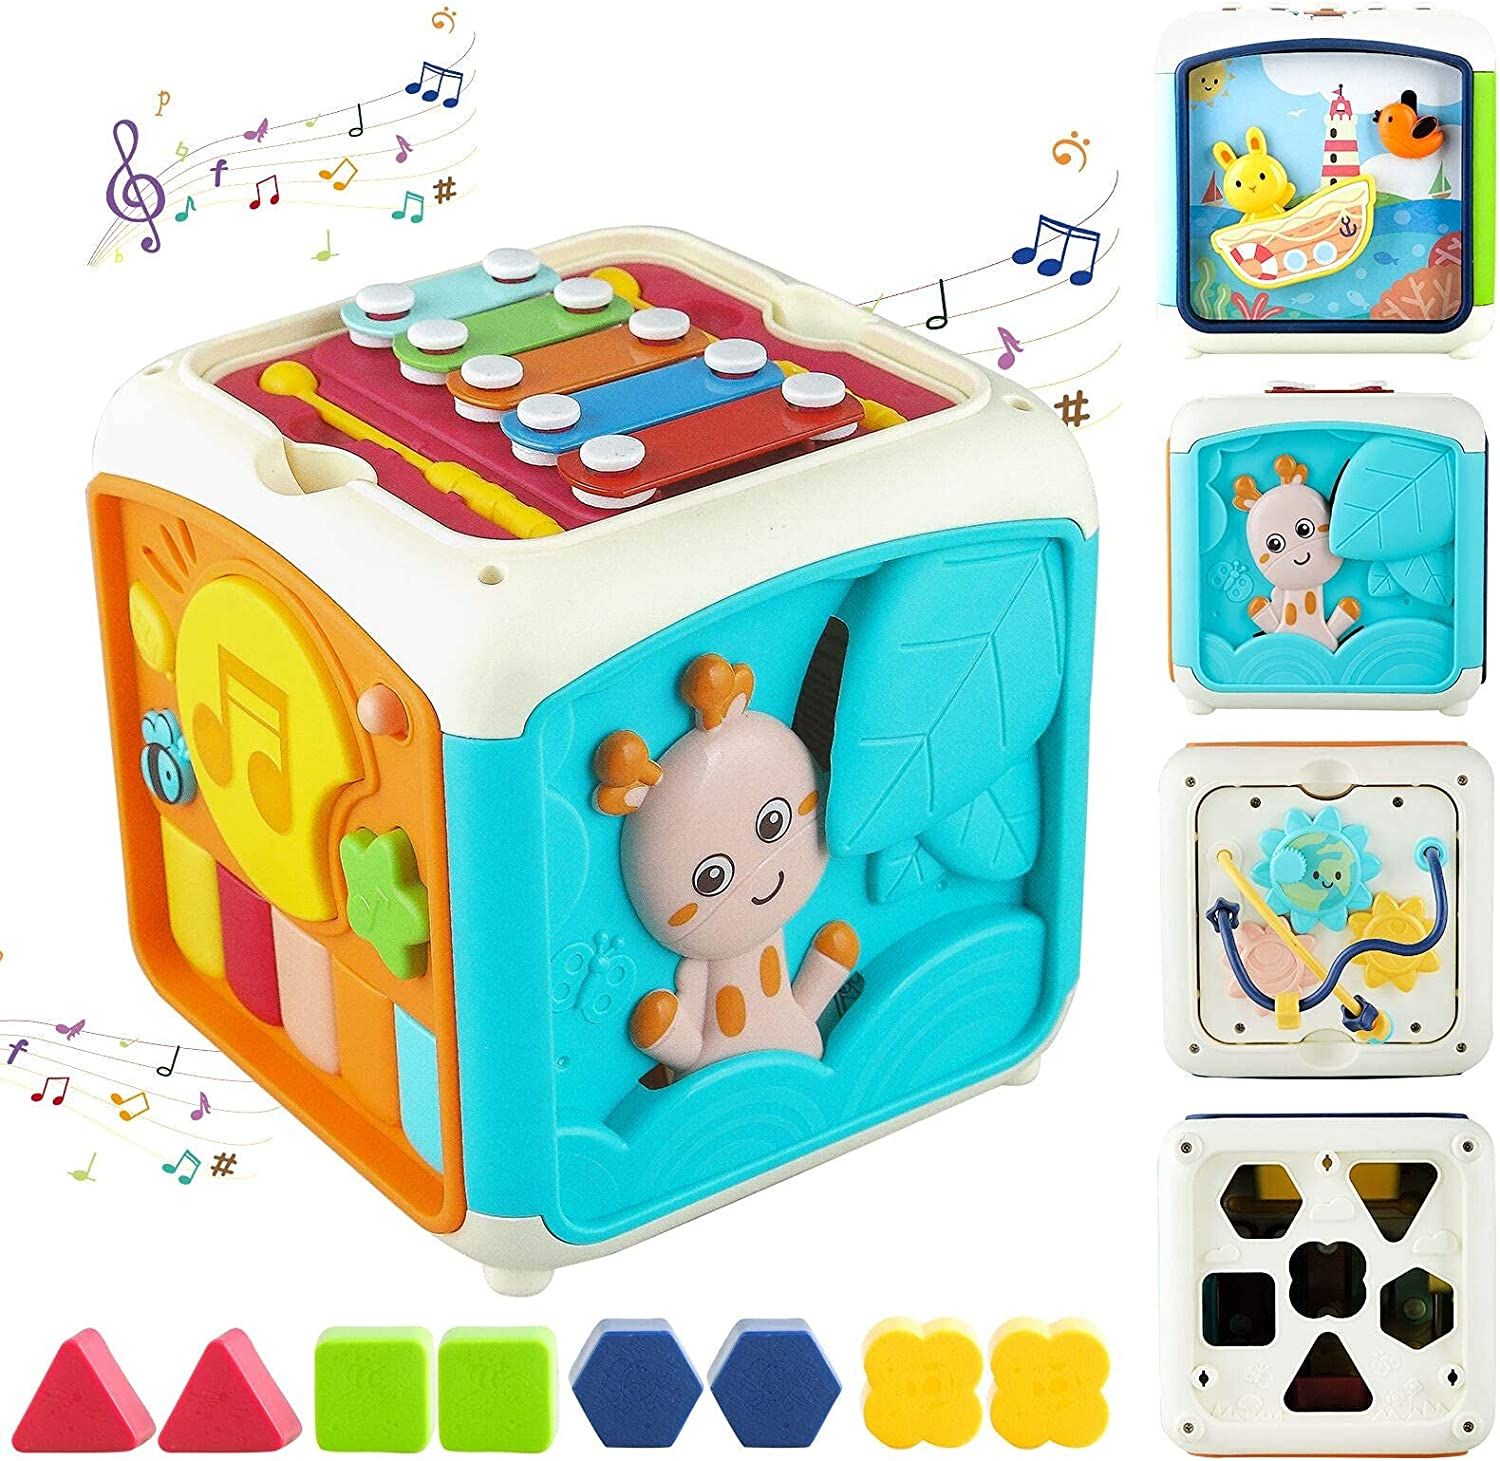 Tikooere Activity Cube Toy for 1 Year Old Gift, 7 in 1 Multi-Function Musical Toy 1-3,Educational Learning Musical Toy Gifts with Drum and Xylophone for Boys Girls Toddlers Kids 1 2 3 Years Old(Blue)